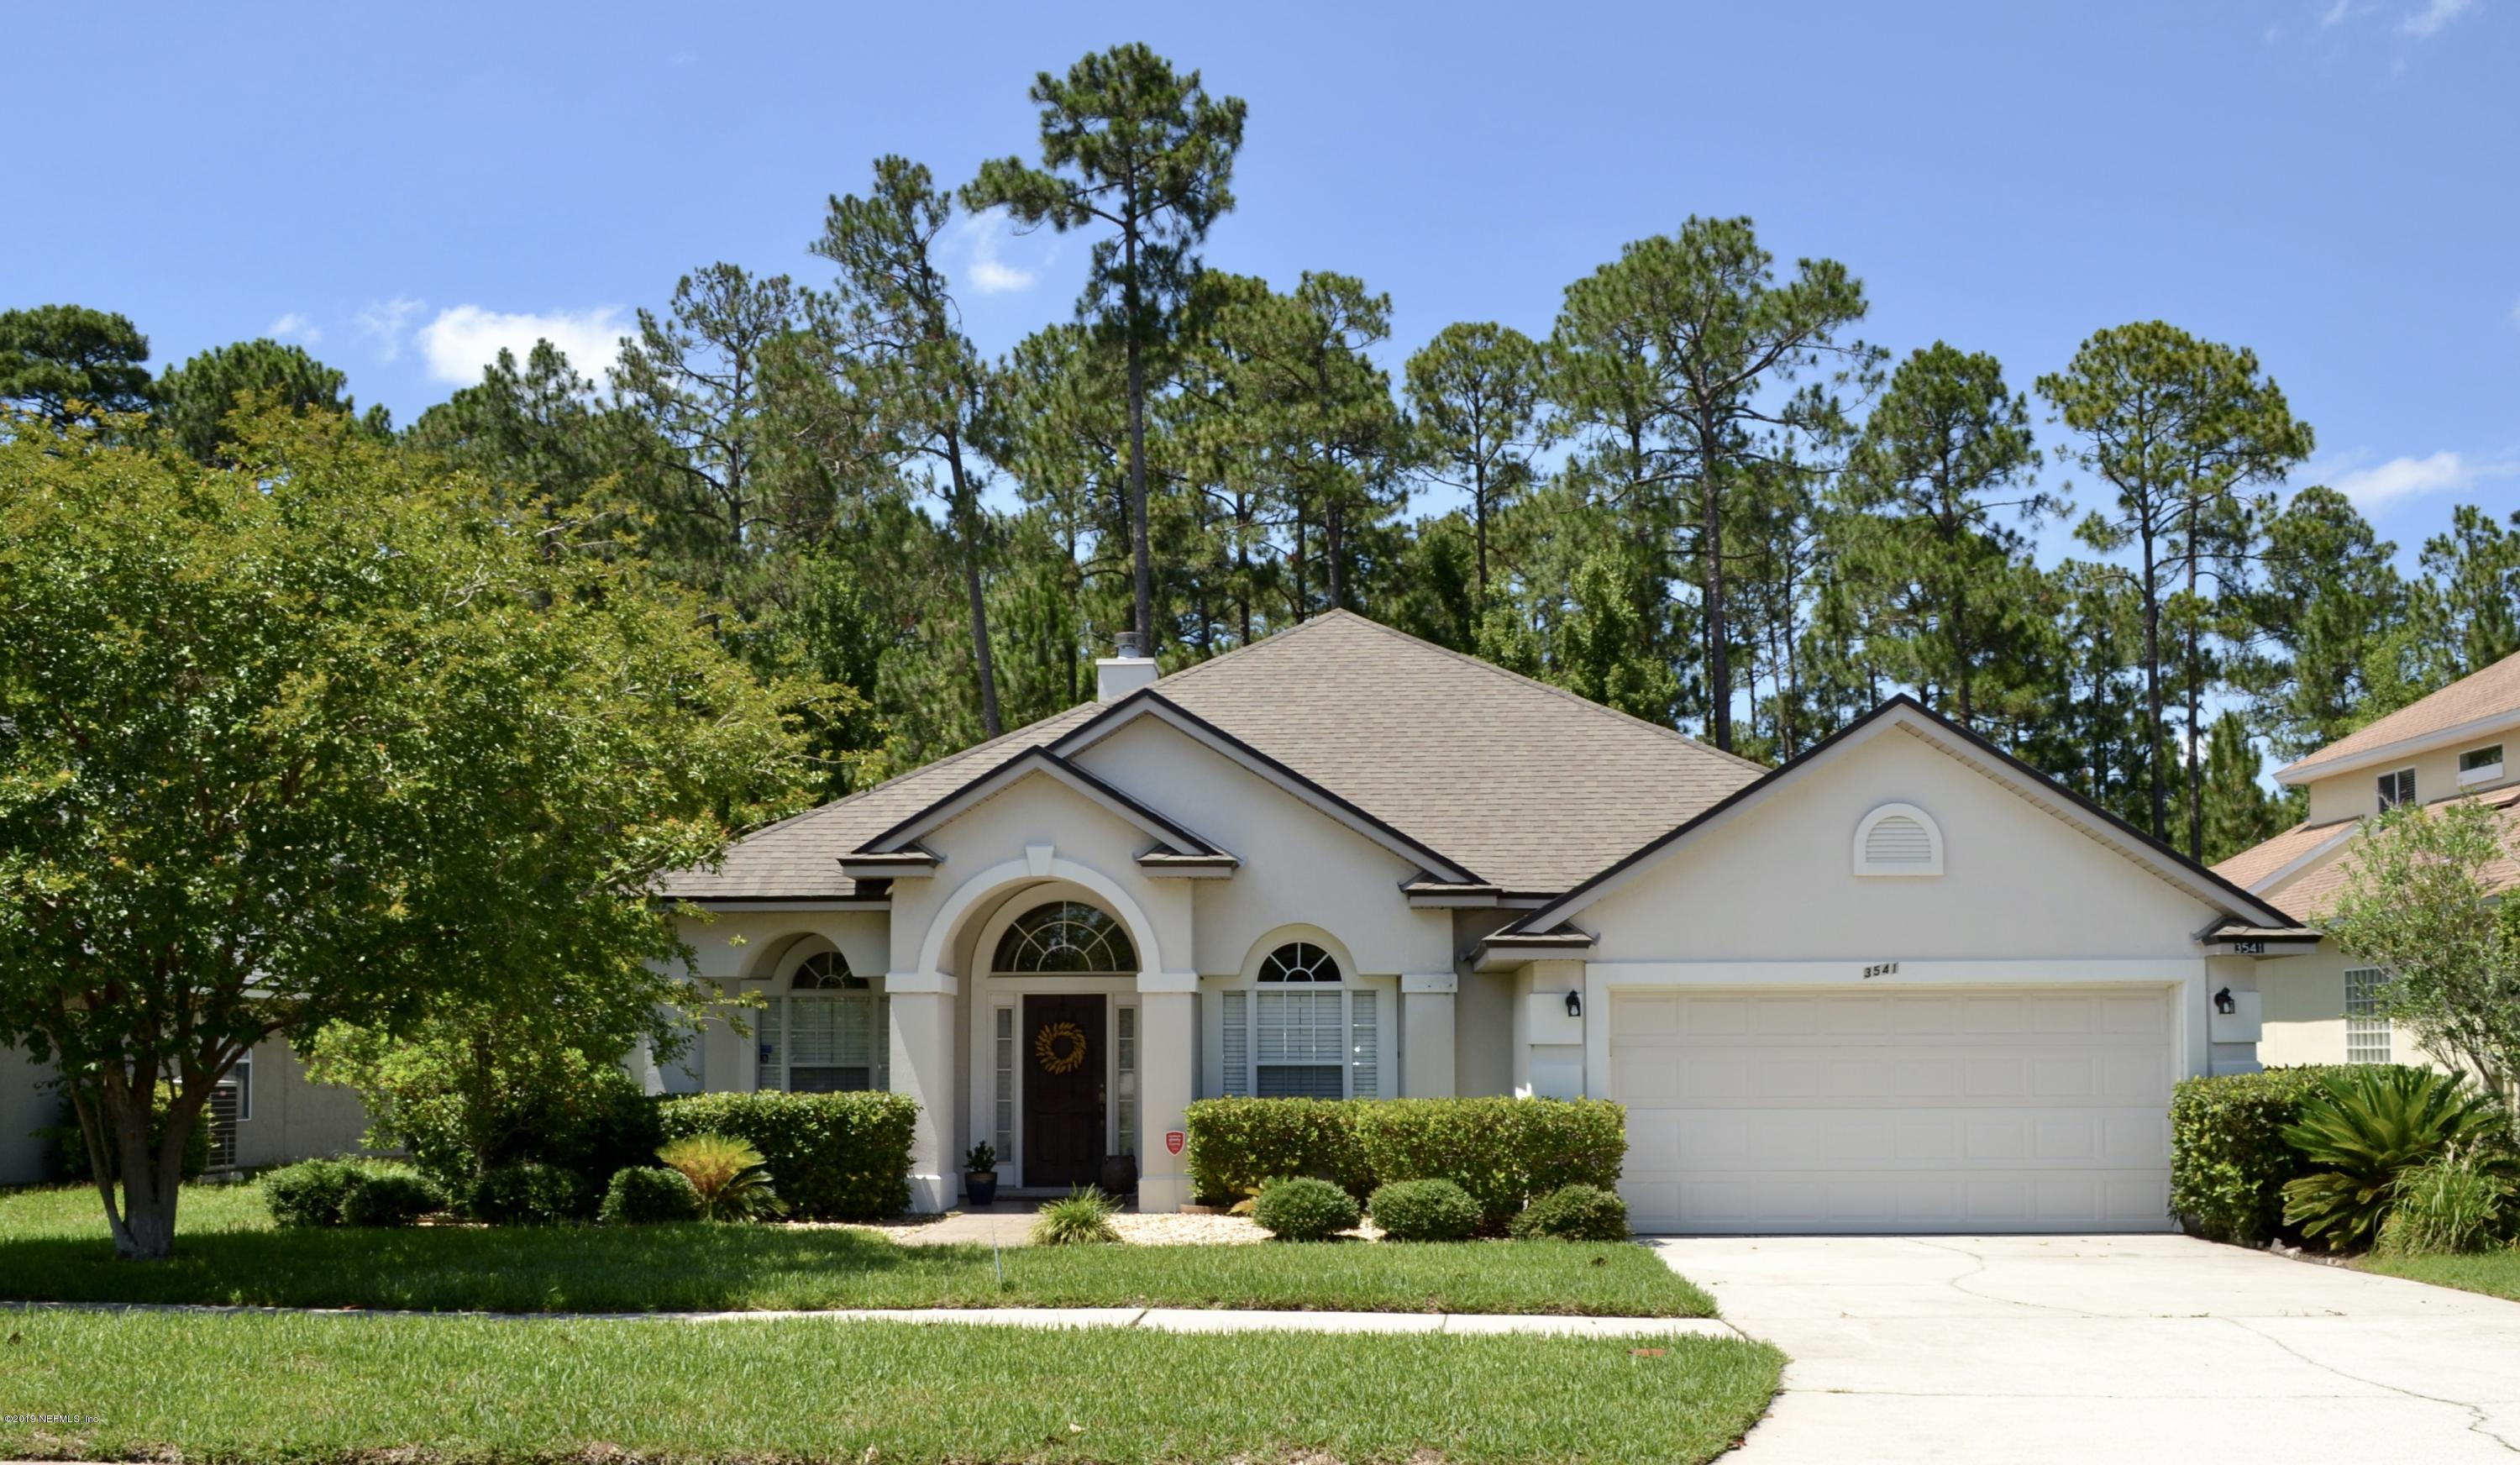 3541 VICTORIA LAKES, JACKSONVILLE, FLORIDA 32226, 4 Bedrooms Bedrooms, ,3 BathroomsBathrooms,Residential - single family,For sale,VICTORIA LAKES,1000917